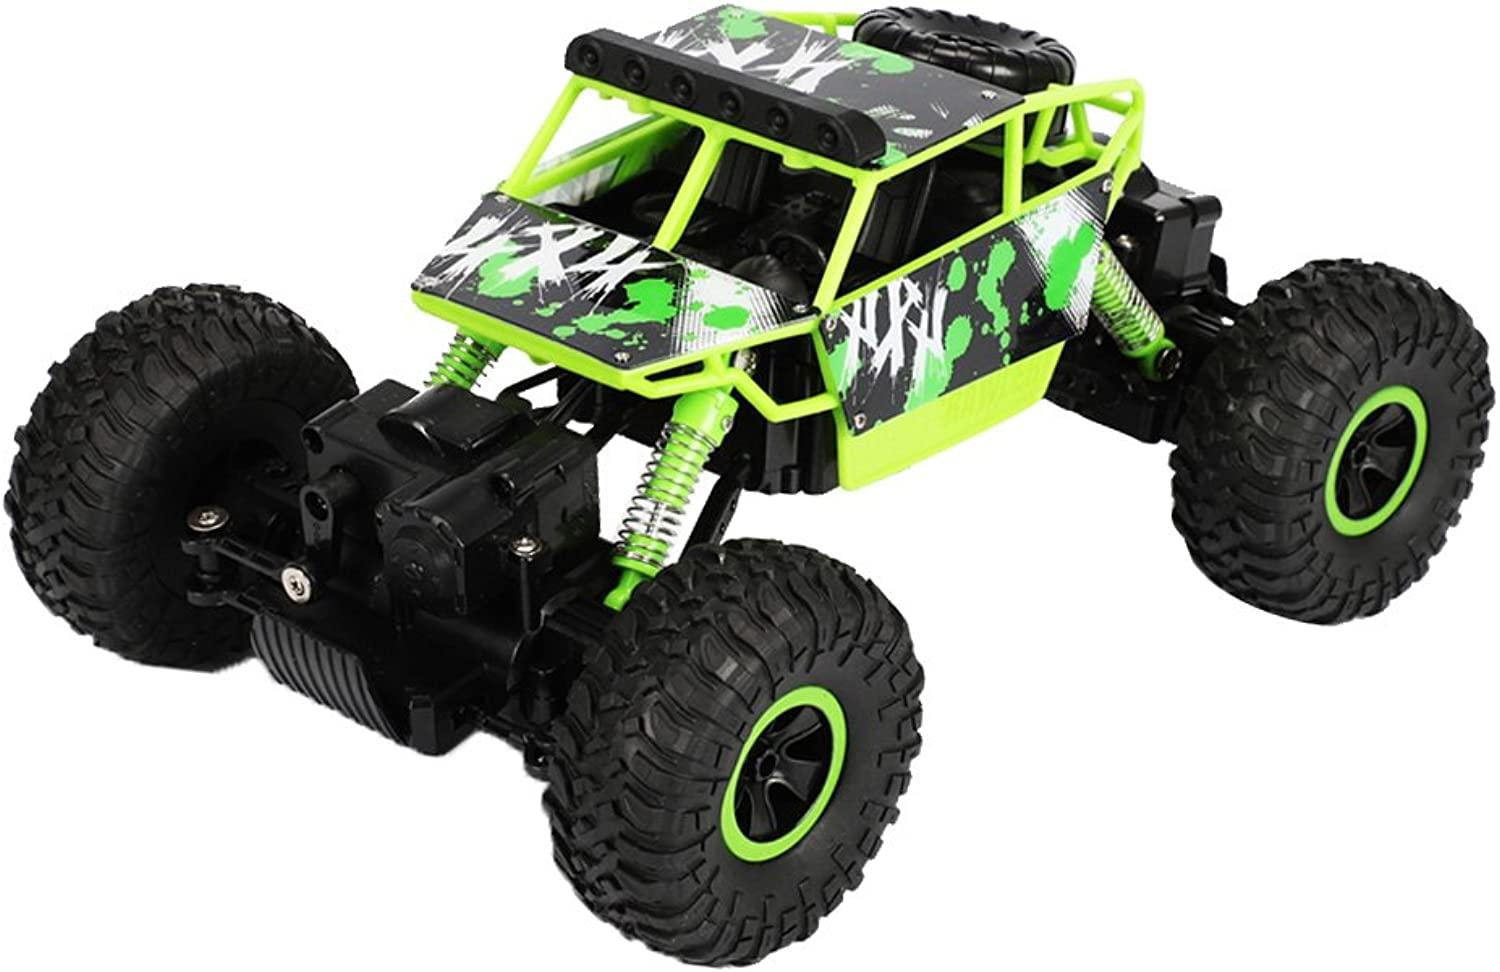 Fityle OffRoad Remote Control 1 18 2.4G 4WD Rock Crawler Radio RC Car Toy Gifts Green